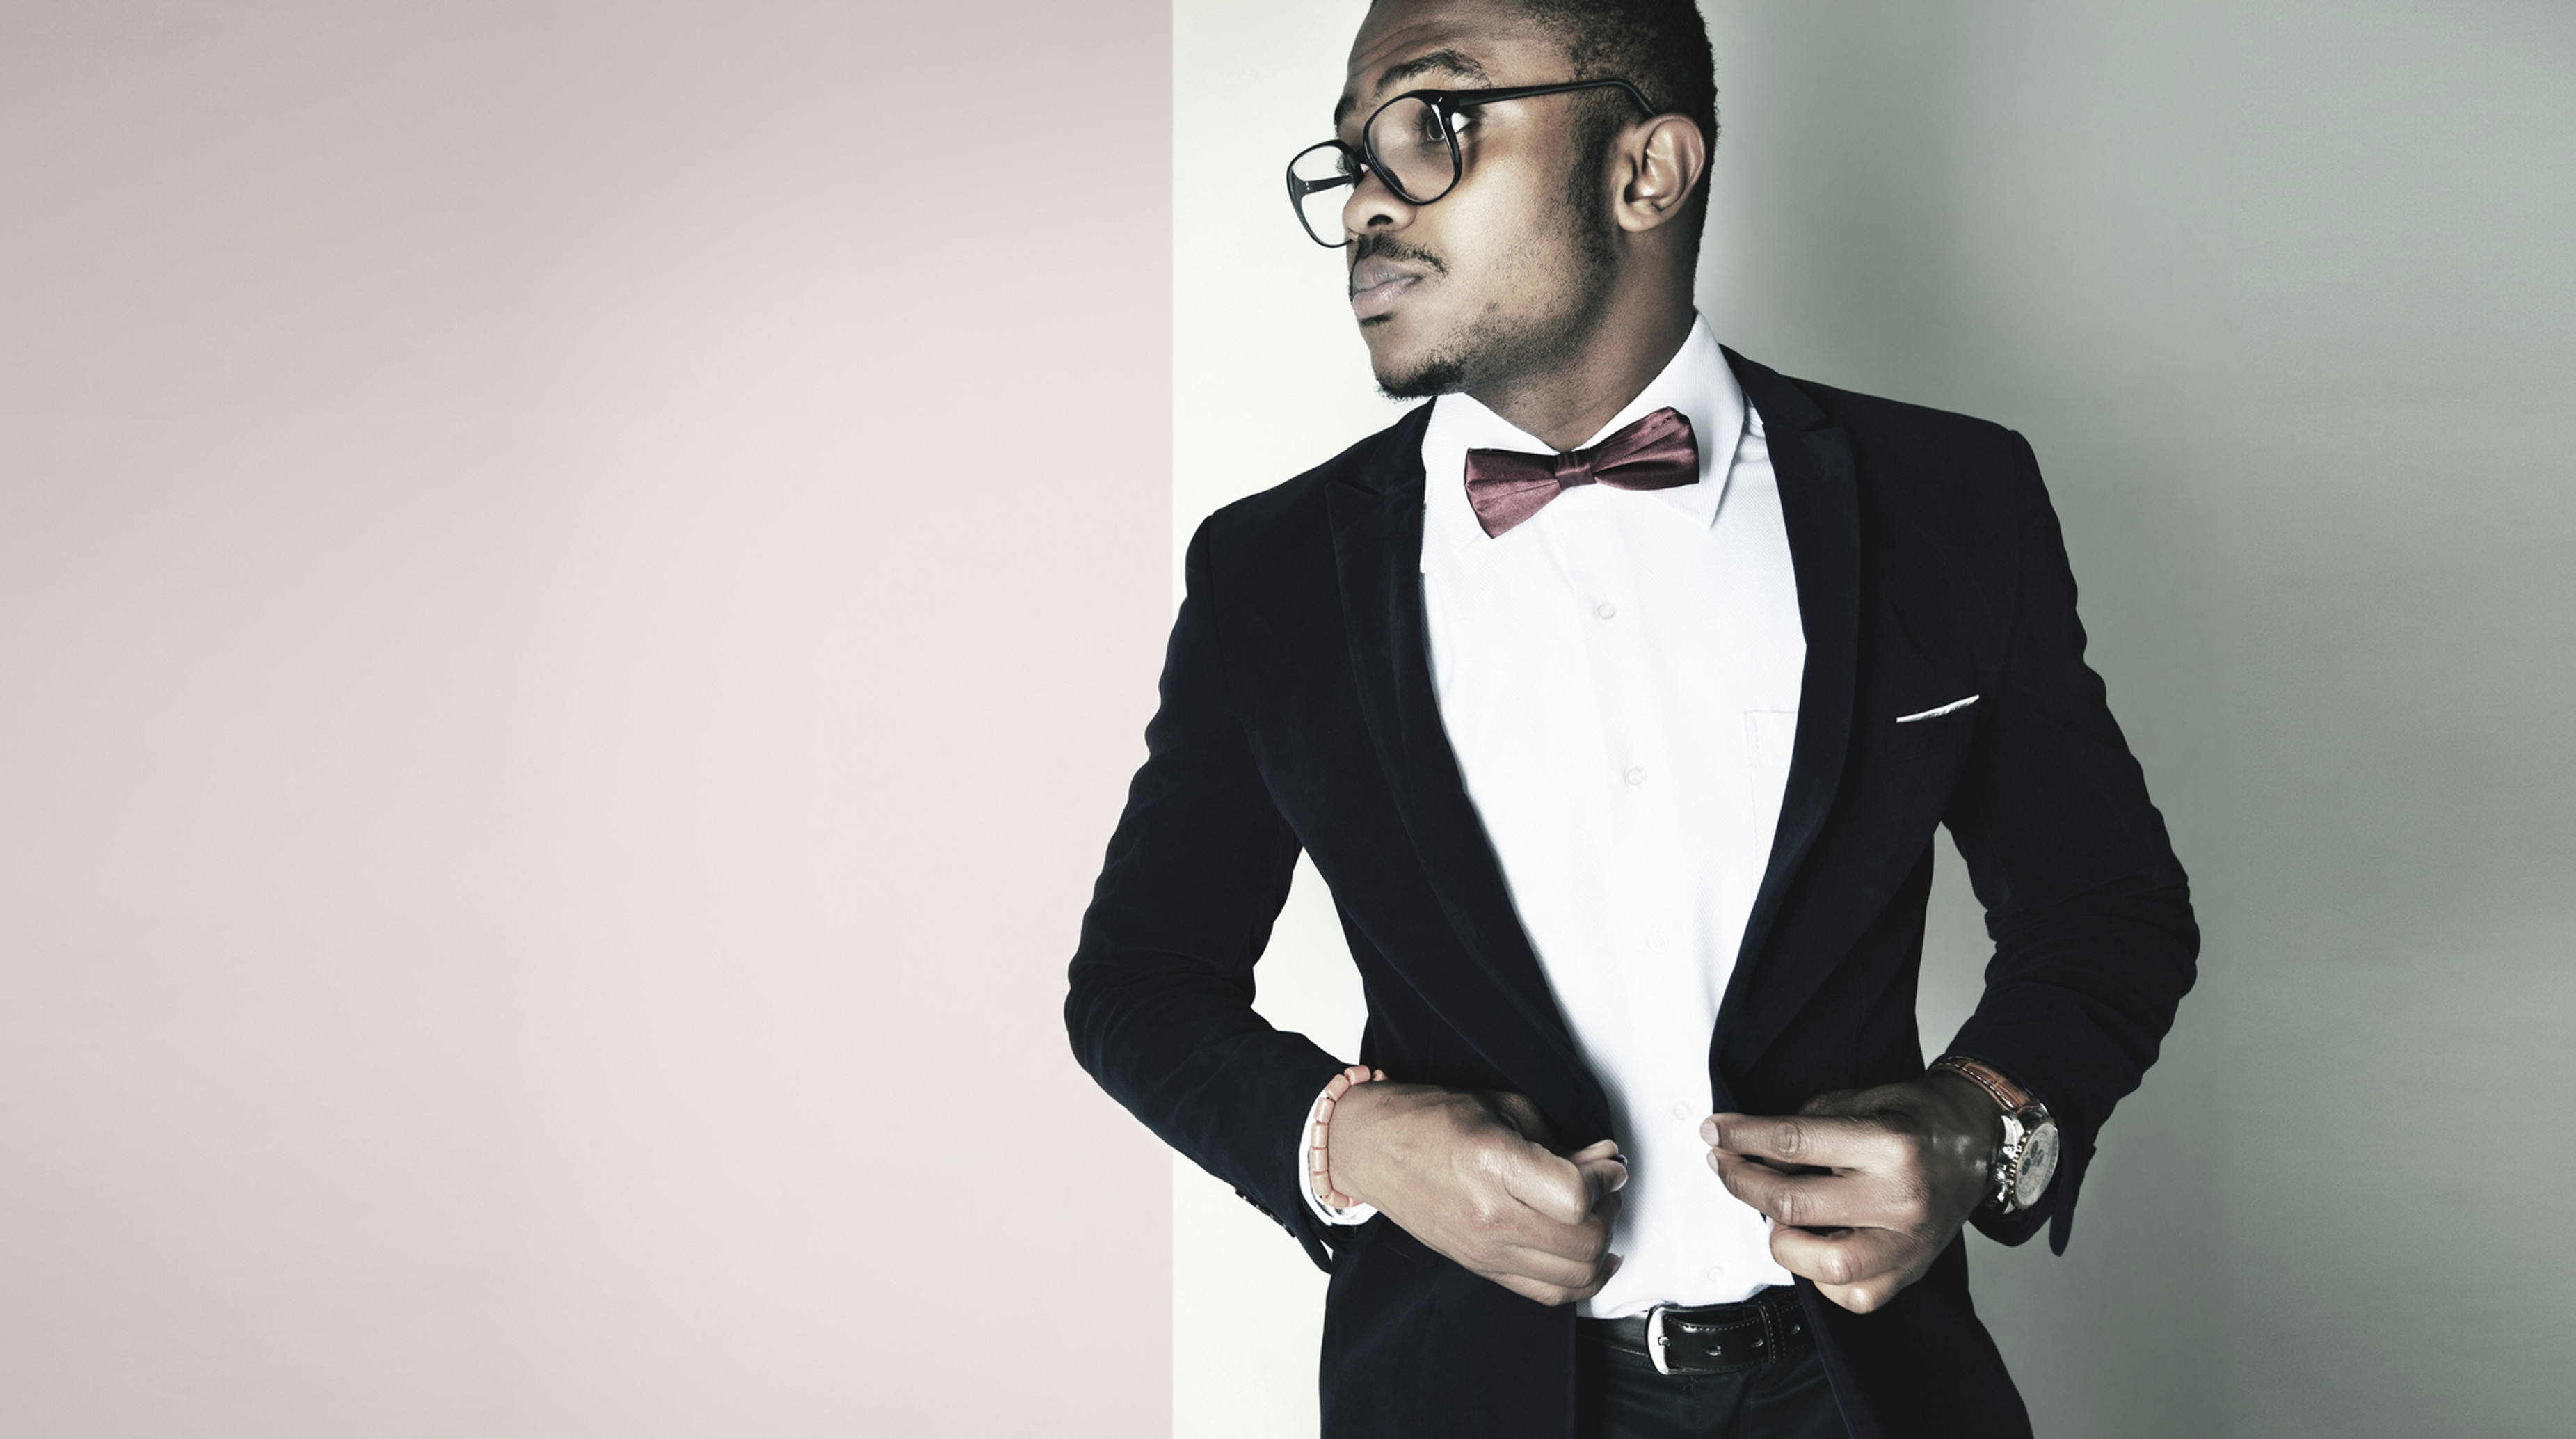 Tuxedo Rental Fitting Appointment